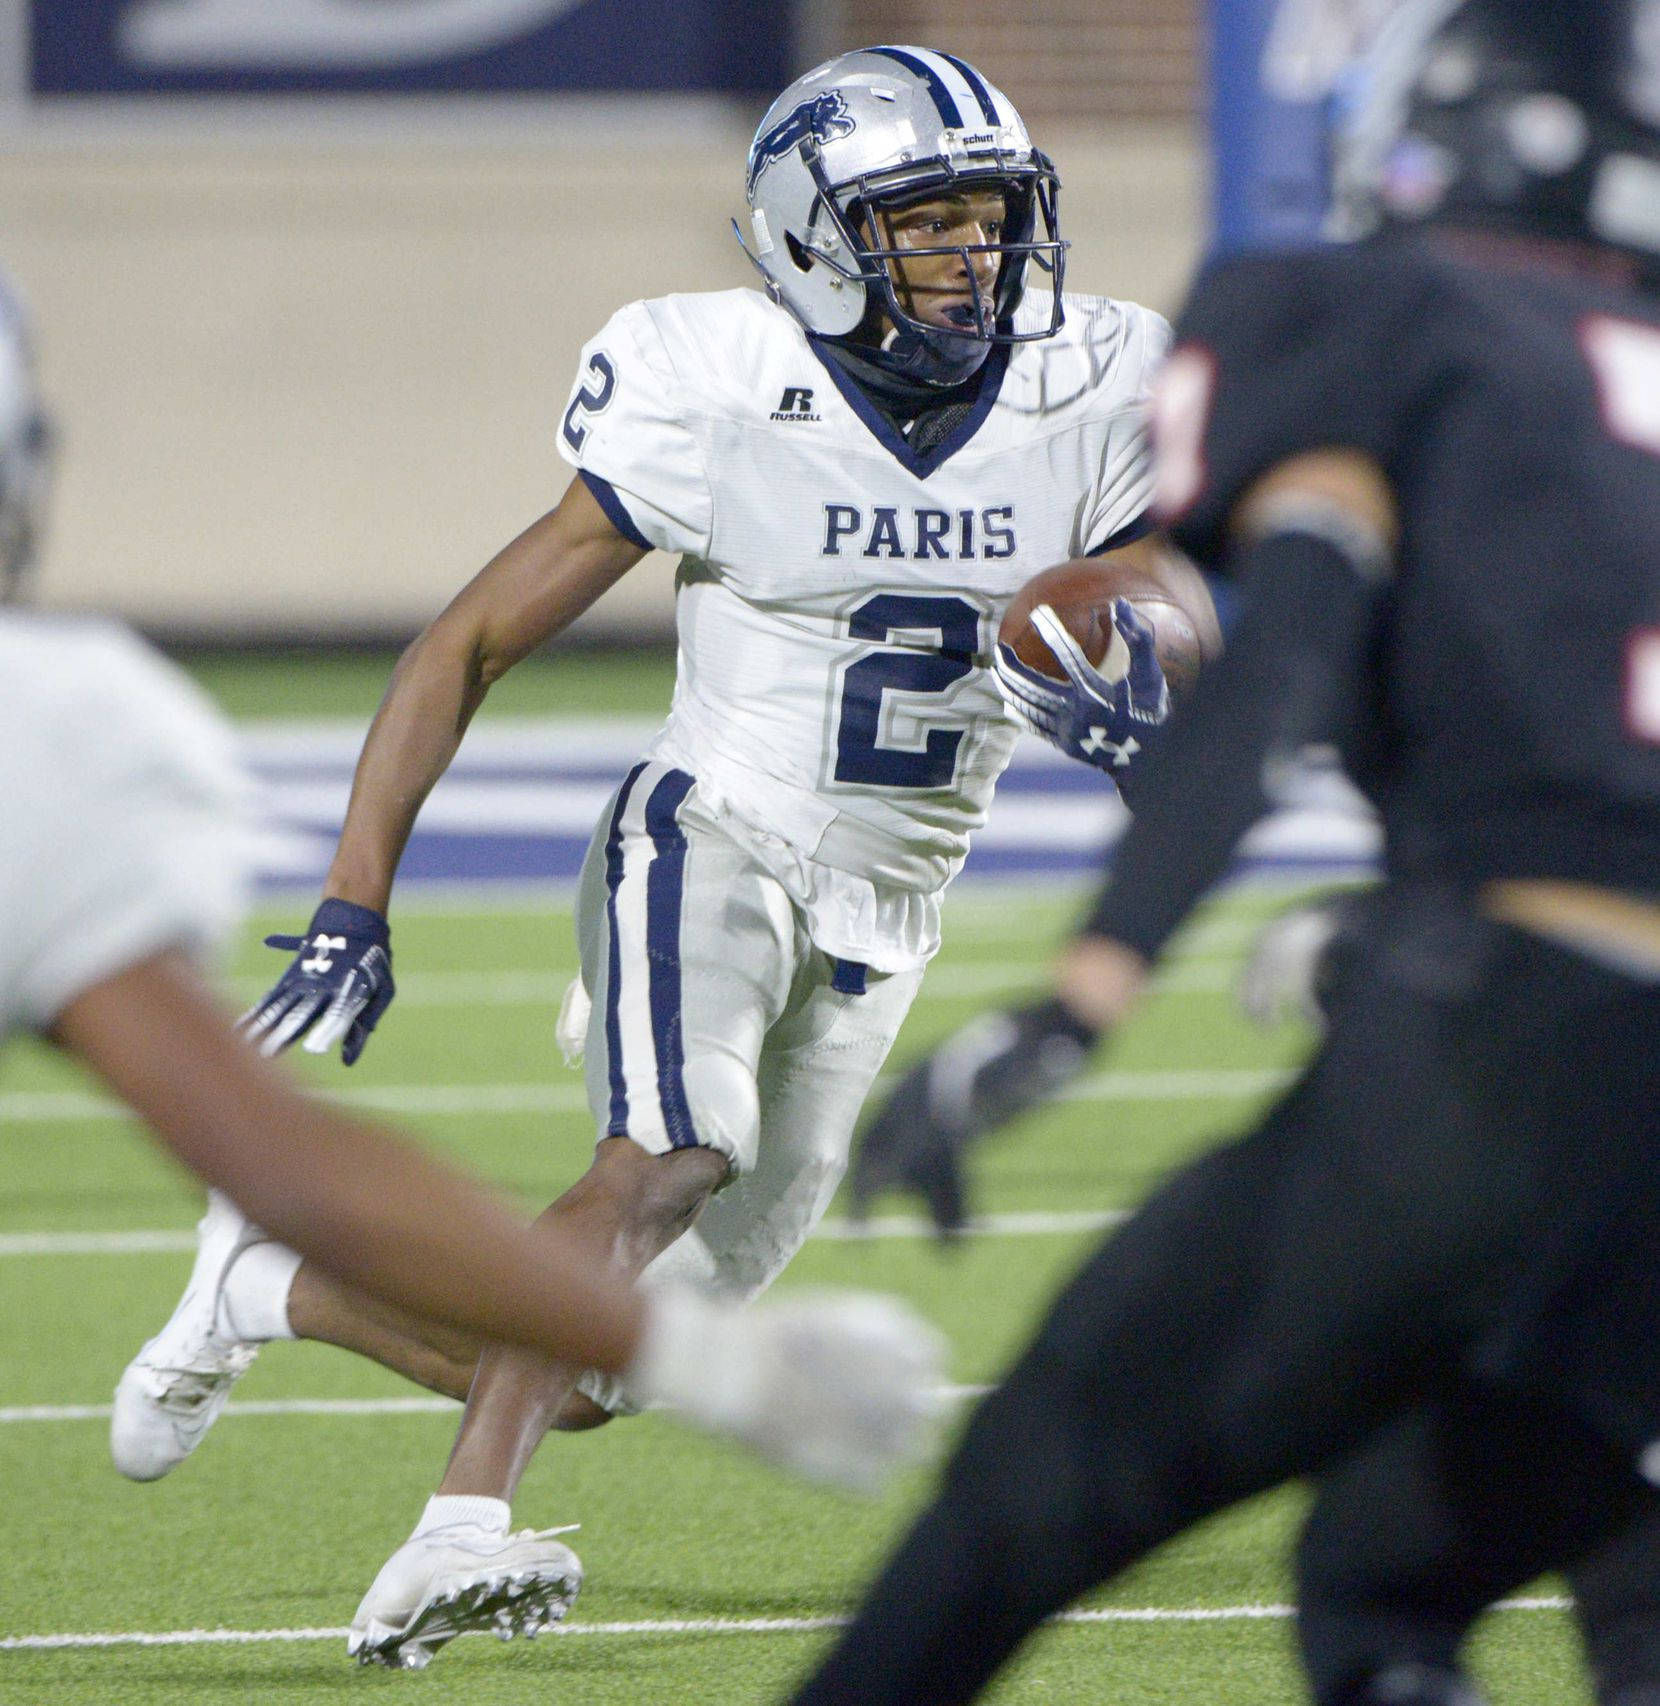 Paris' KD Washington (2) looks for running room in the first half during a Class 4A Division I Region II final playoff football game between Paris and Argyle, Saturday, Dec. 5, 2020, in McKinney,  Texas. (Matt Strasen/Special Contributor)